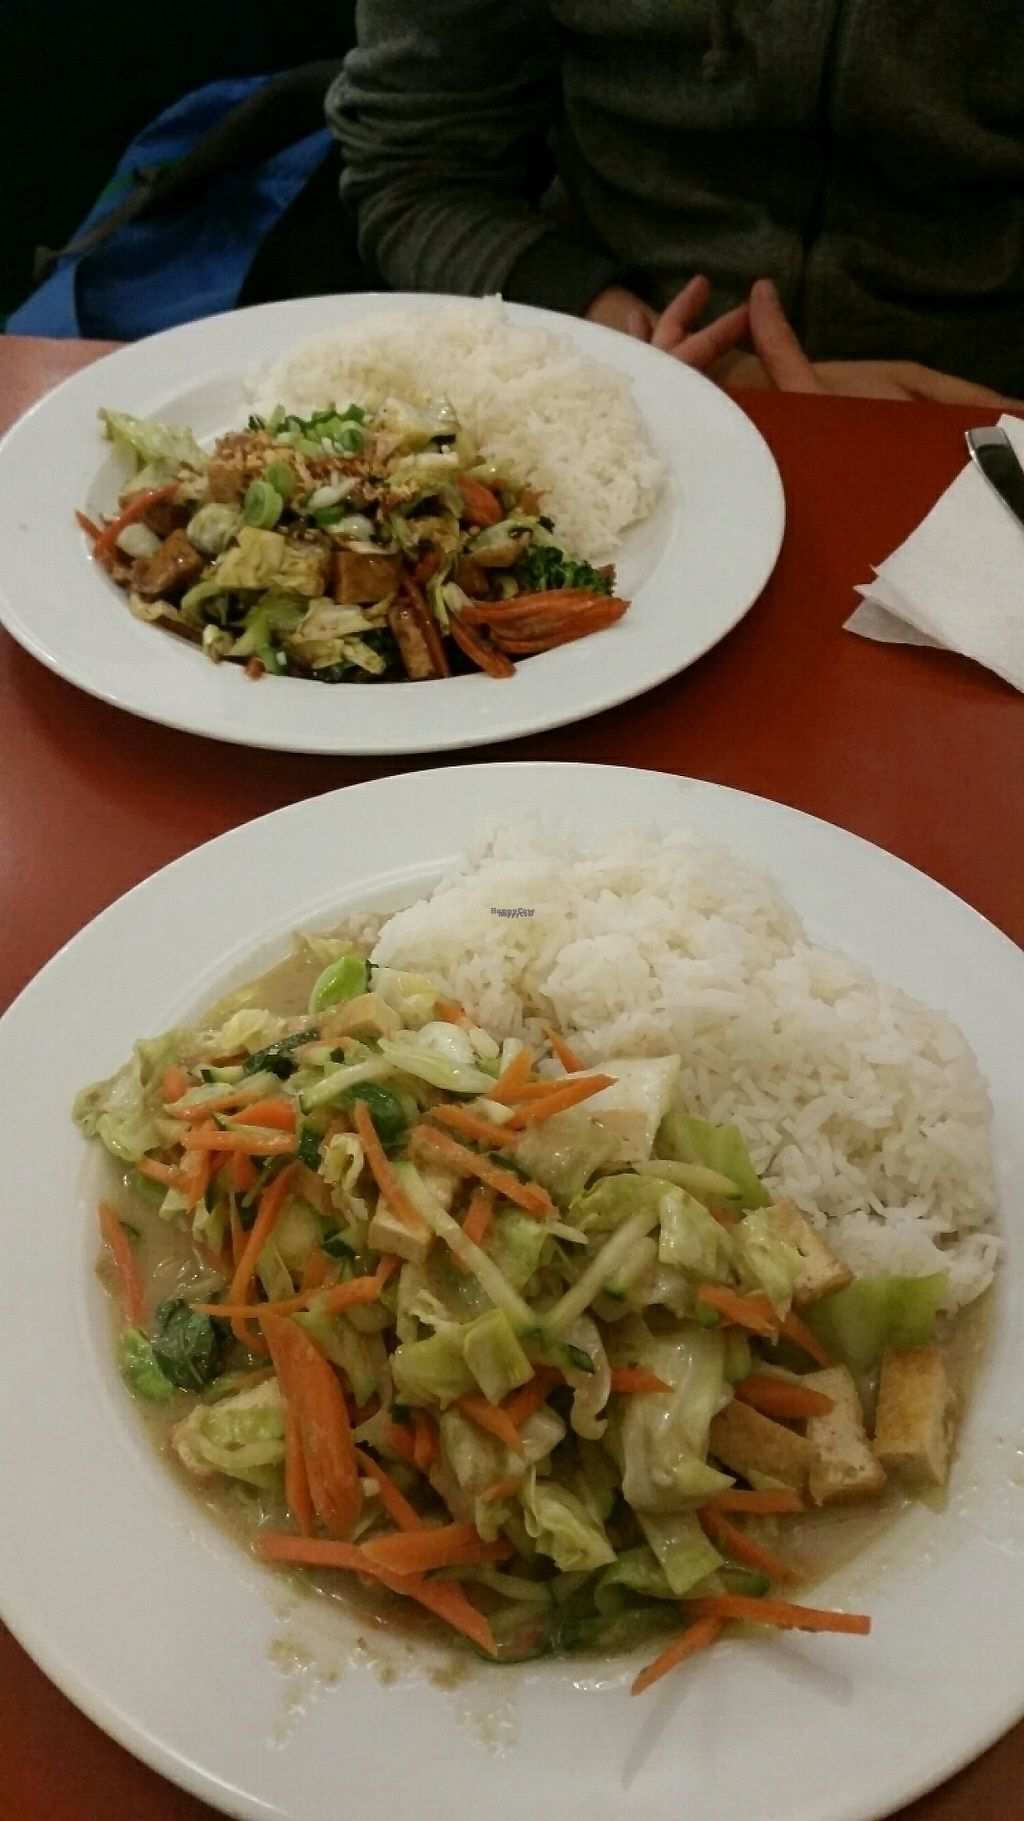 """Photo of Tong Thai  by <a href=""""/members/profile/uschiverena"""">uschiverena</a> <br/>chop suey and Green curry   <br/> April 11, 2017  - <a href='/contact/abuse/image/80426/247142'>Report</a>"""